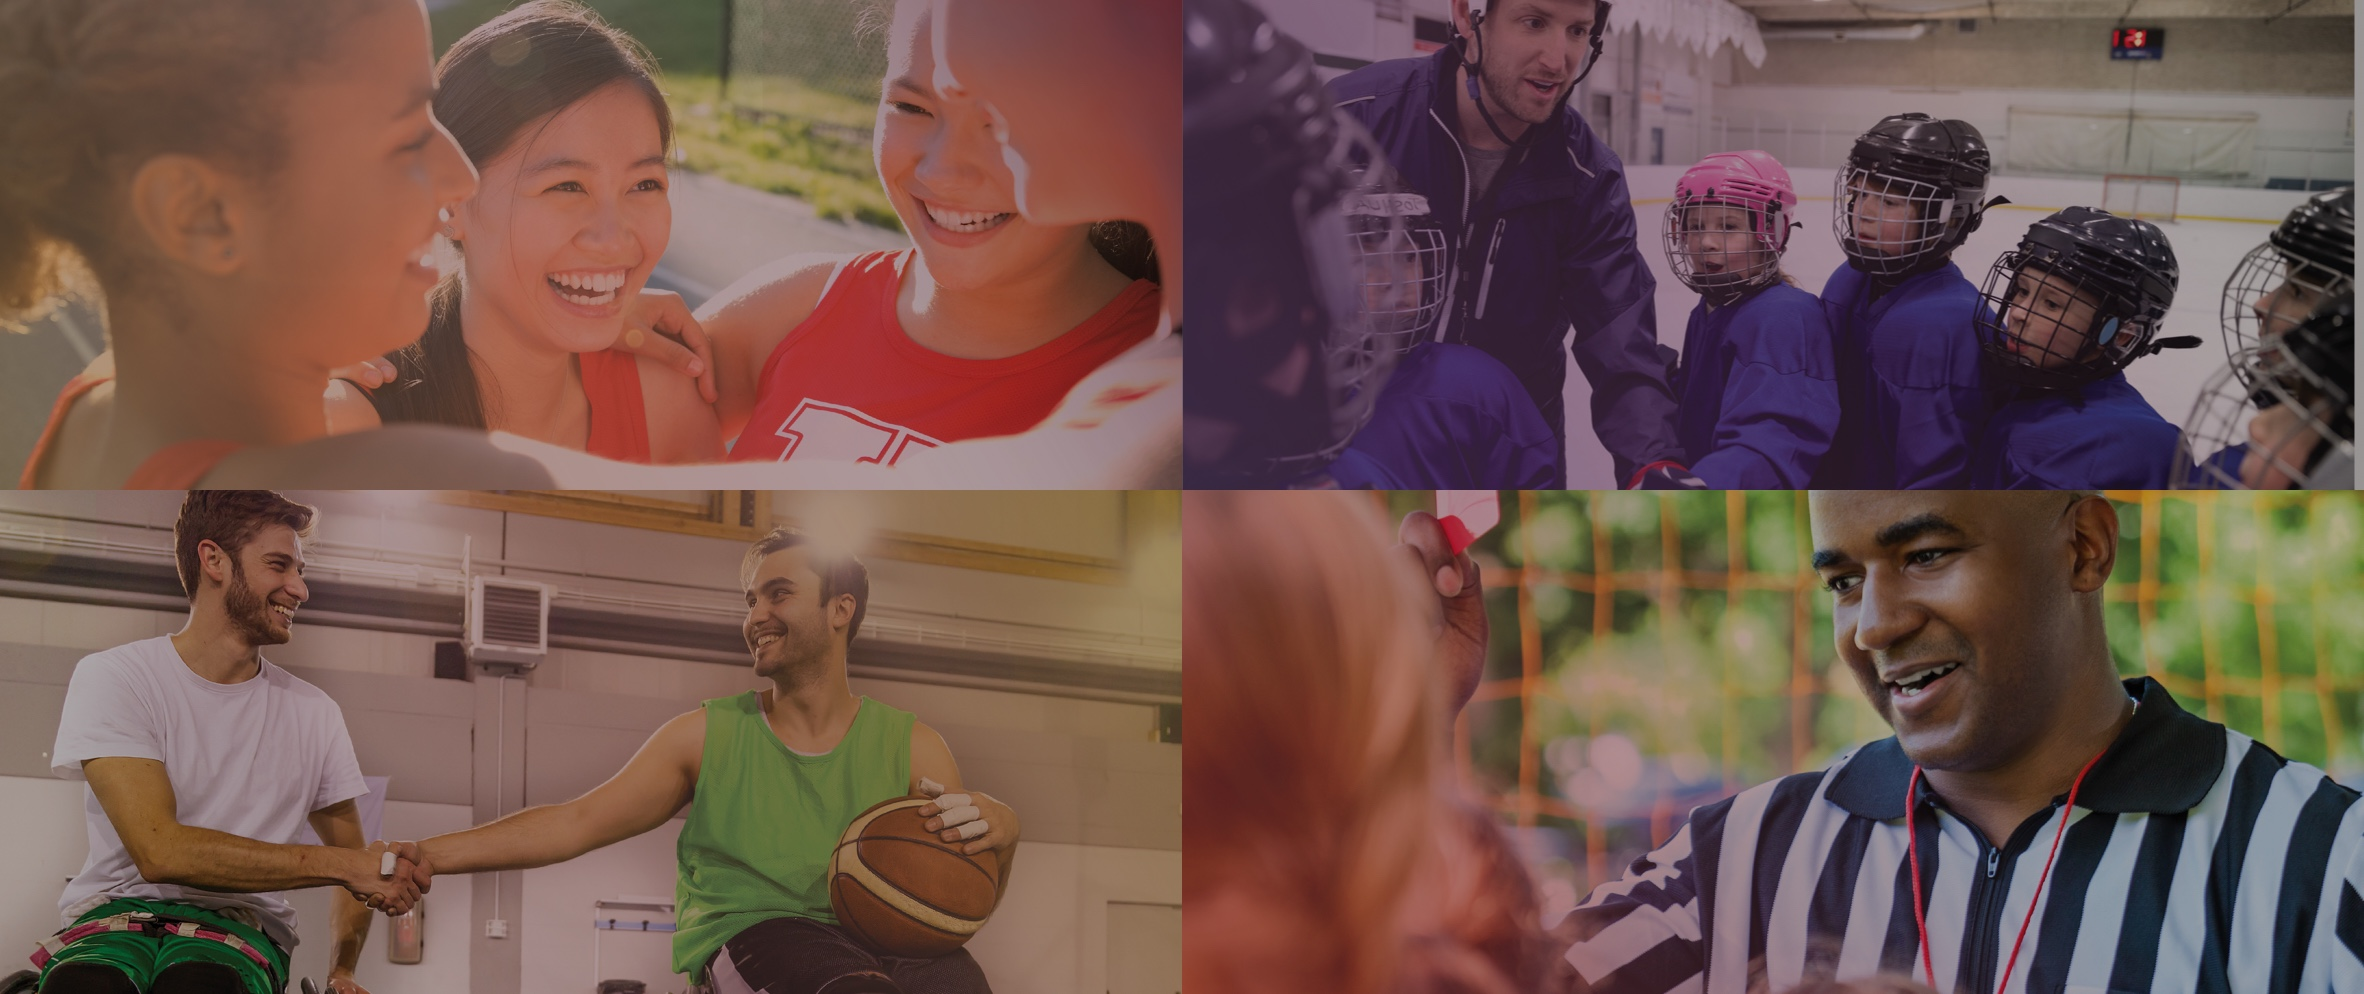 4 picture collage. Picture 1 is of four female athletes smiling in a circle. Picture 2 is of a coach and children's hockey team. Picture 3 is of two wheelchair basketball players shaking hands. Picture 4 is of a referee giving a red card.